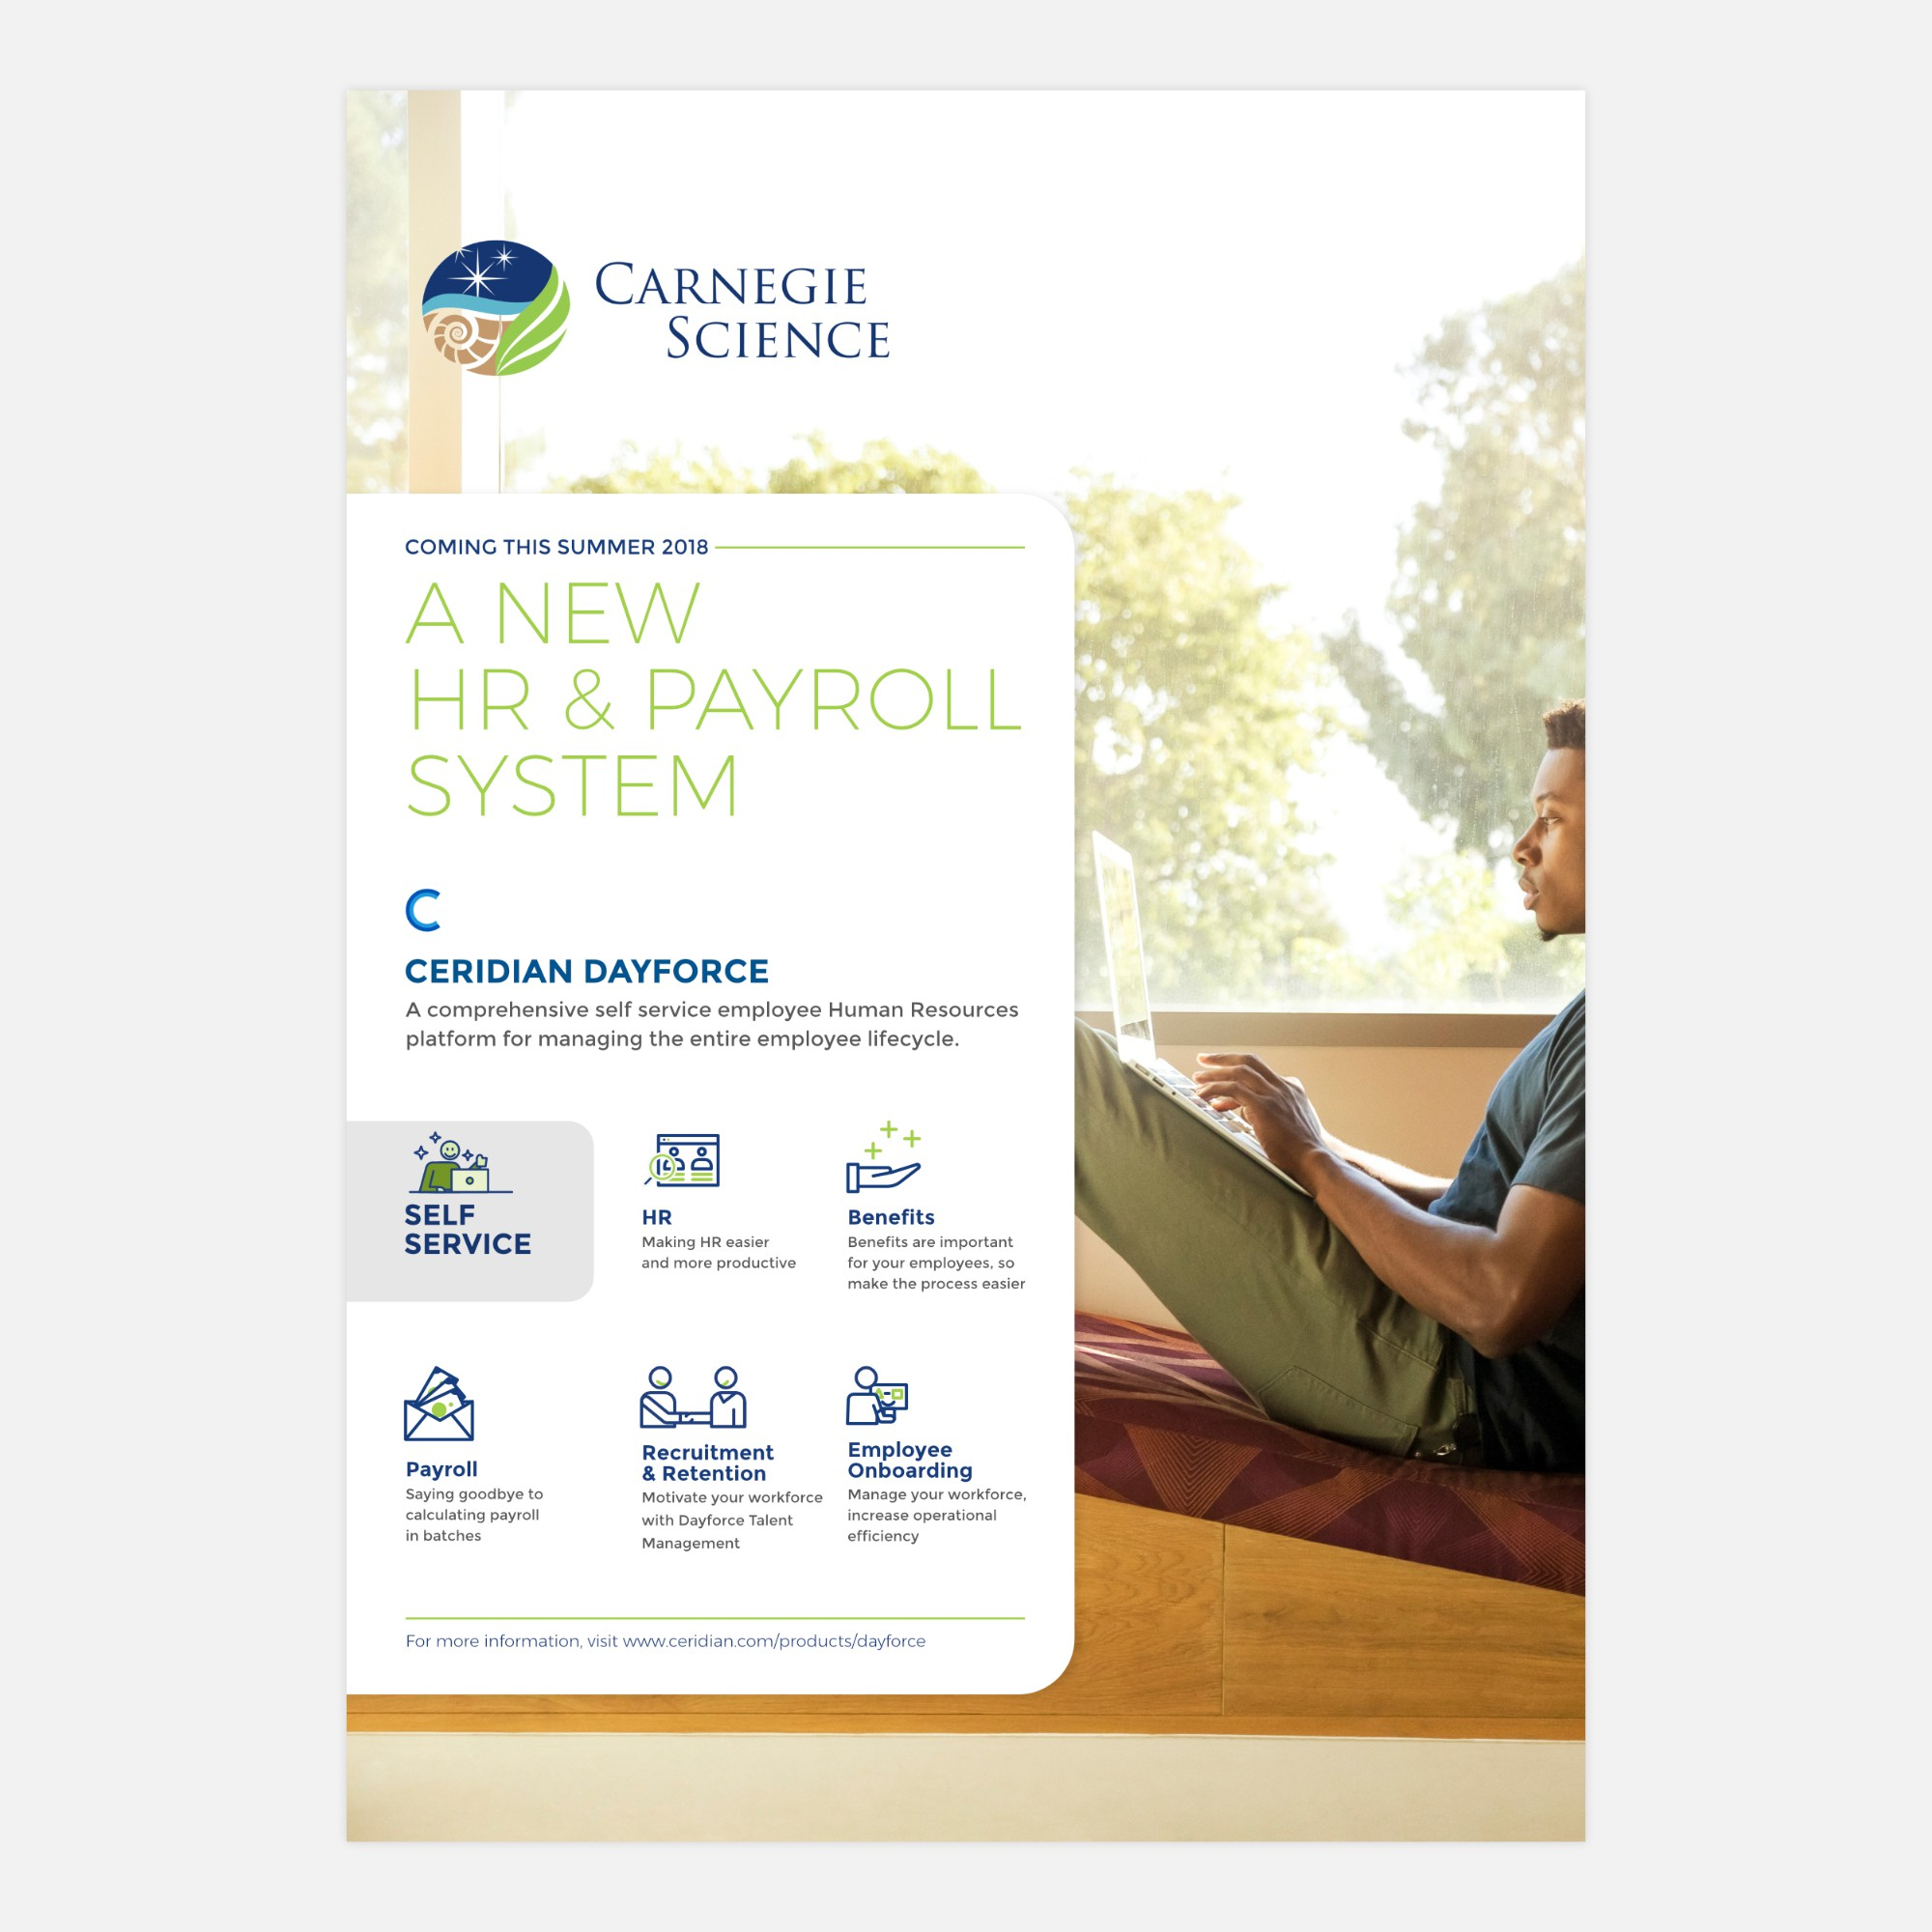 New HR & Payroll system announcement for prestigious science institution